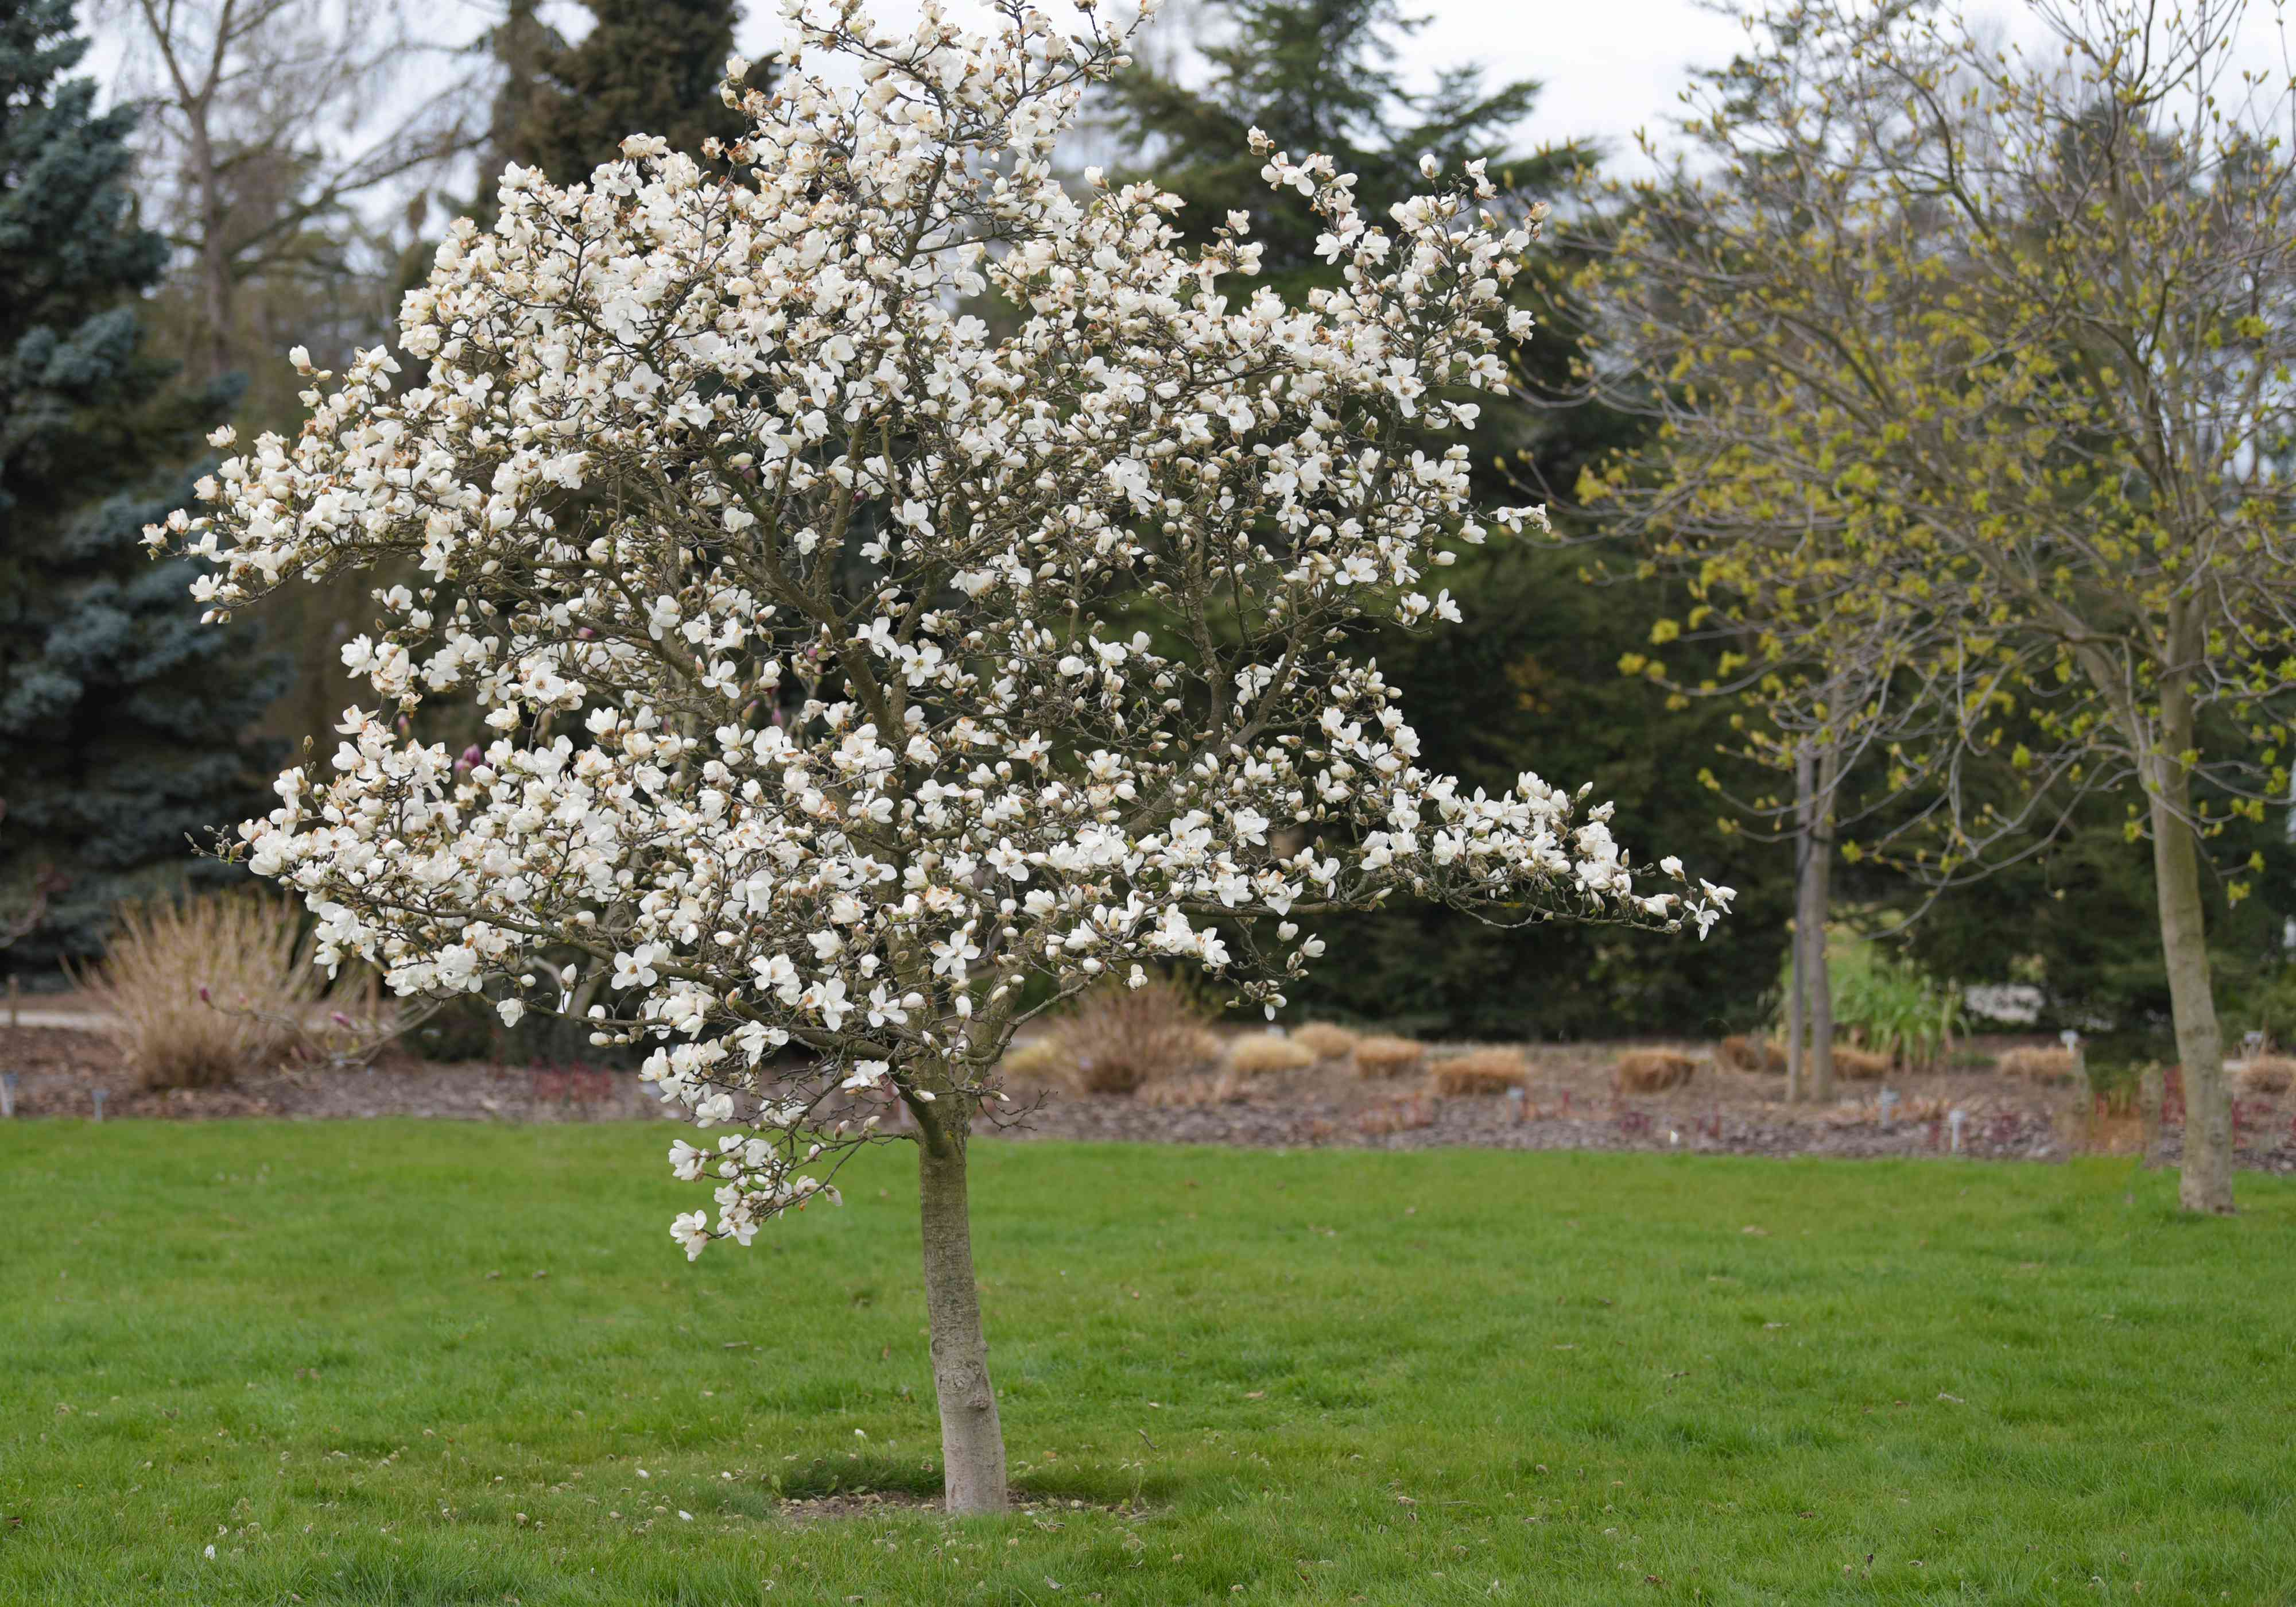 Kobus magnolia tree in middle of field with white flowers blooming on branches